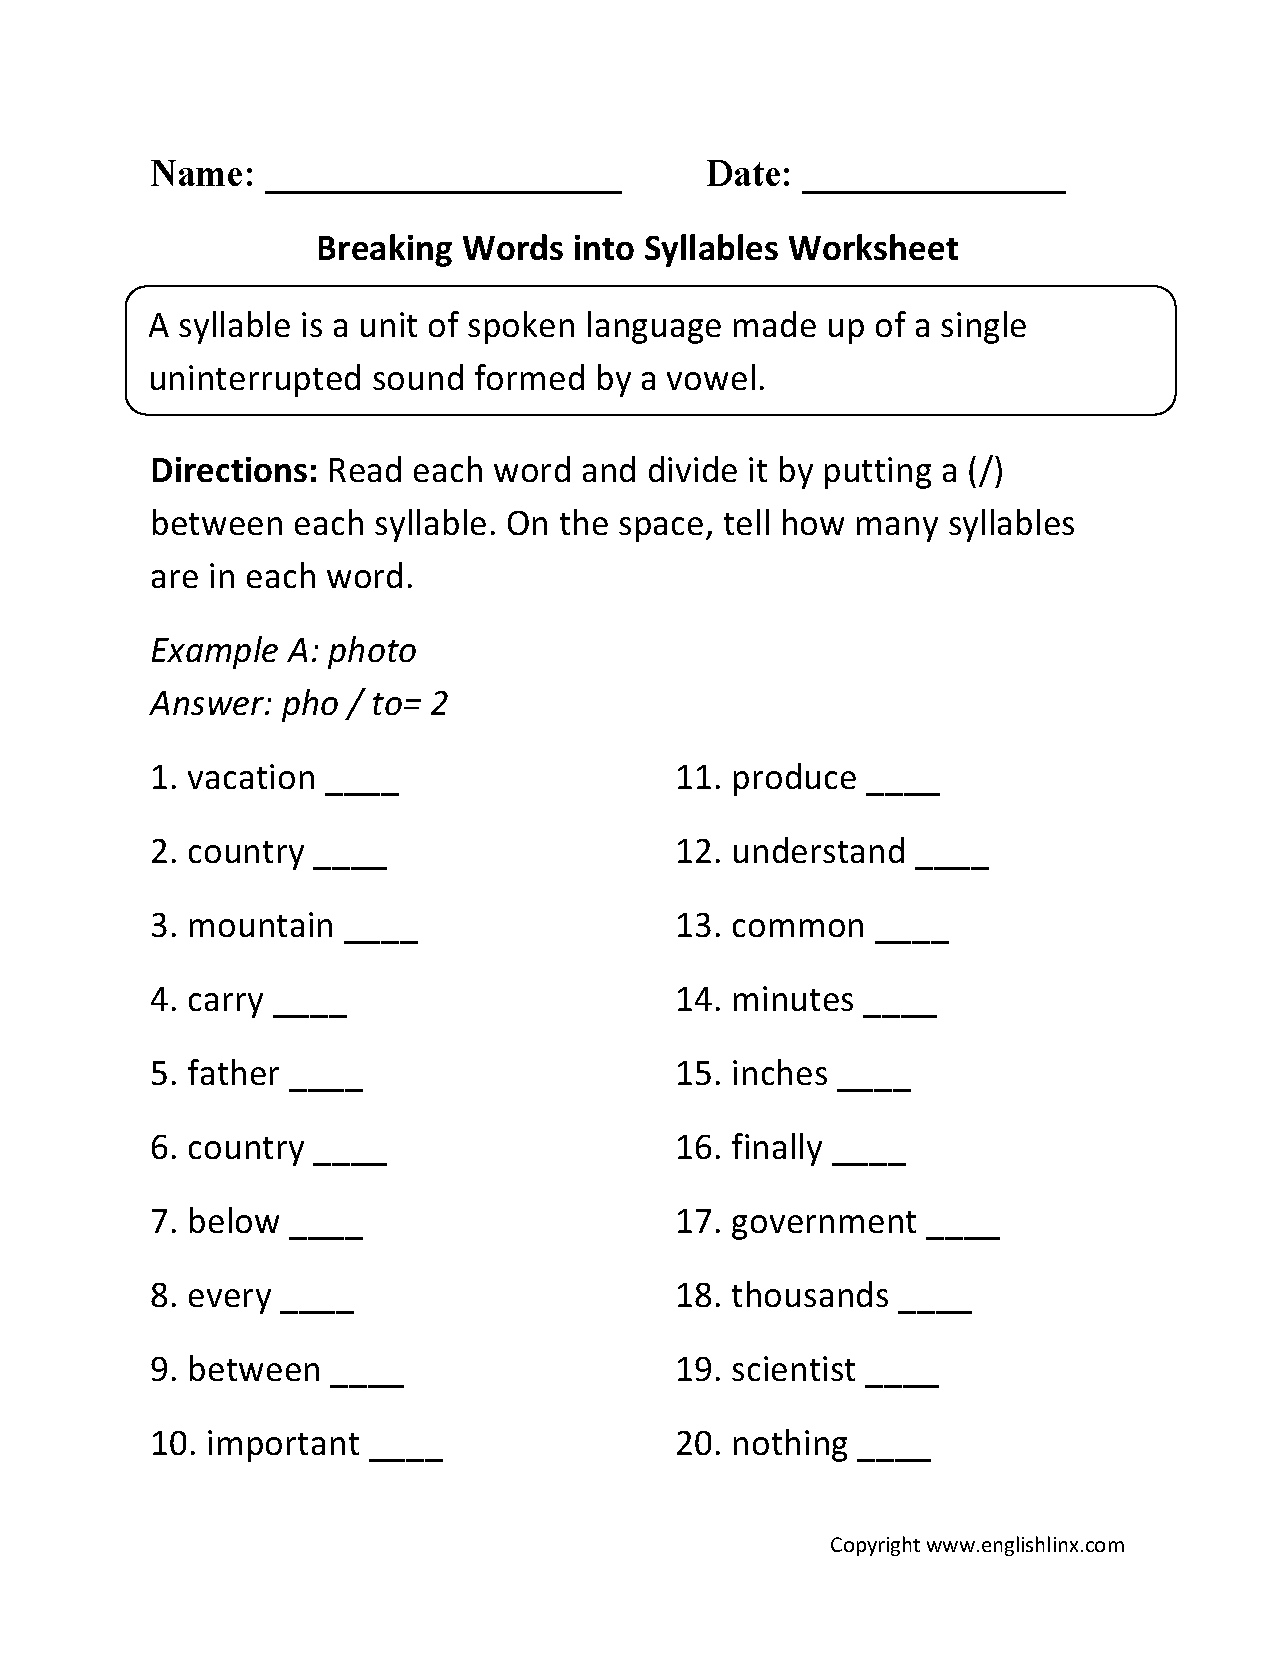 Breaking Words Into Syllables Worksheets